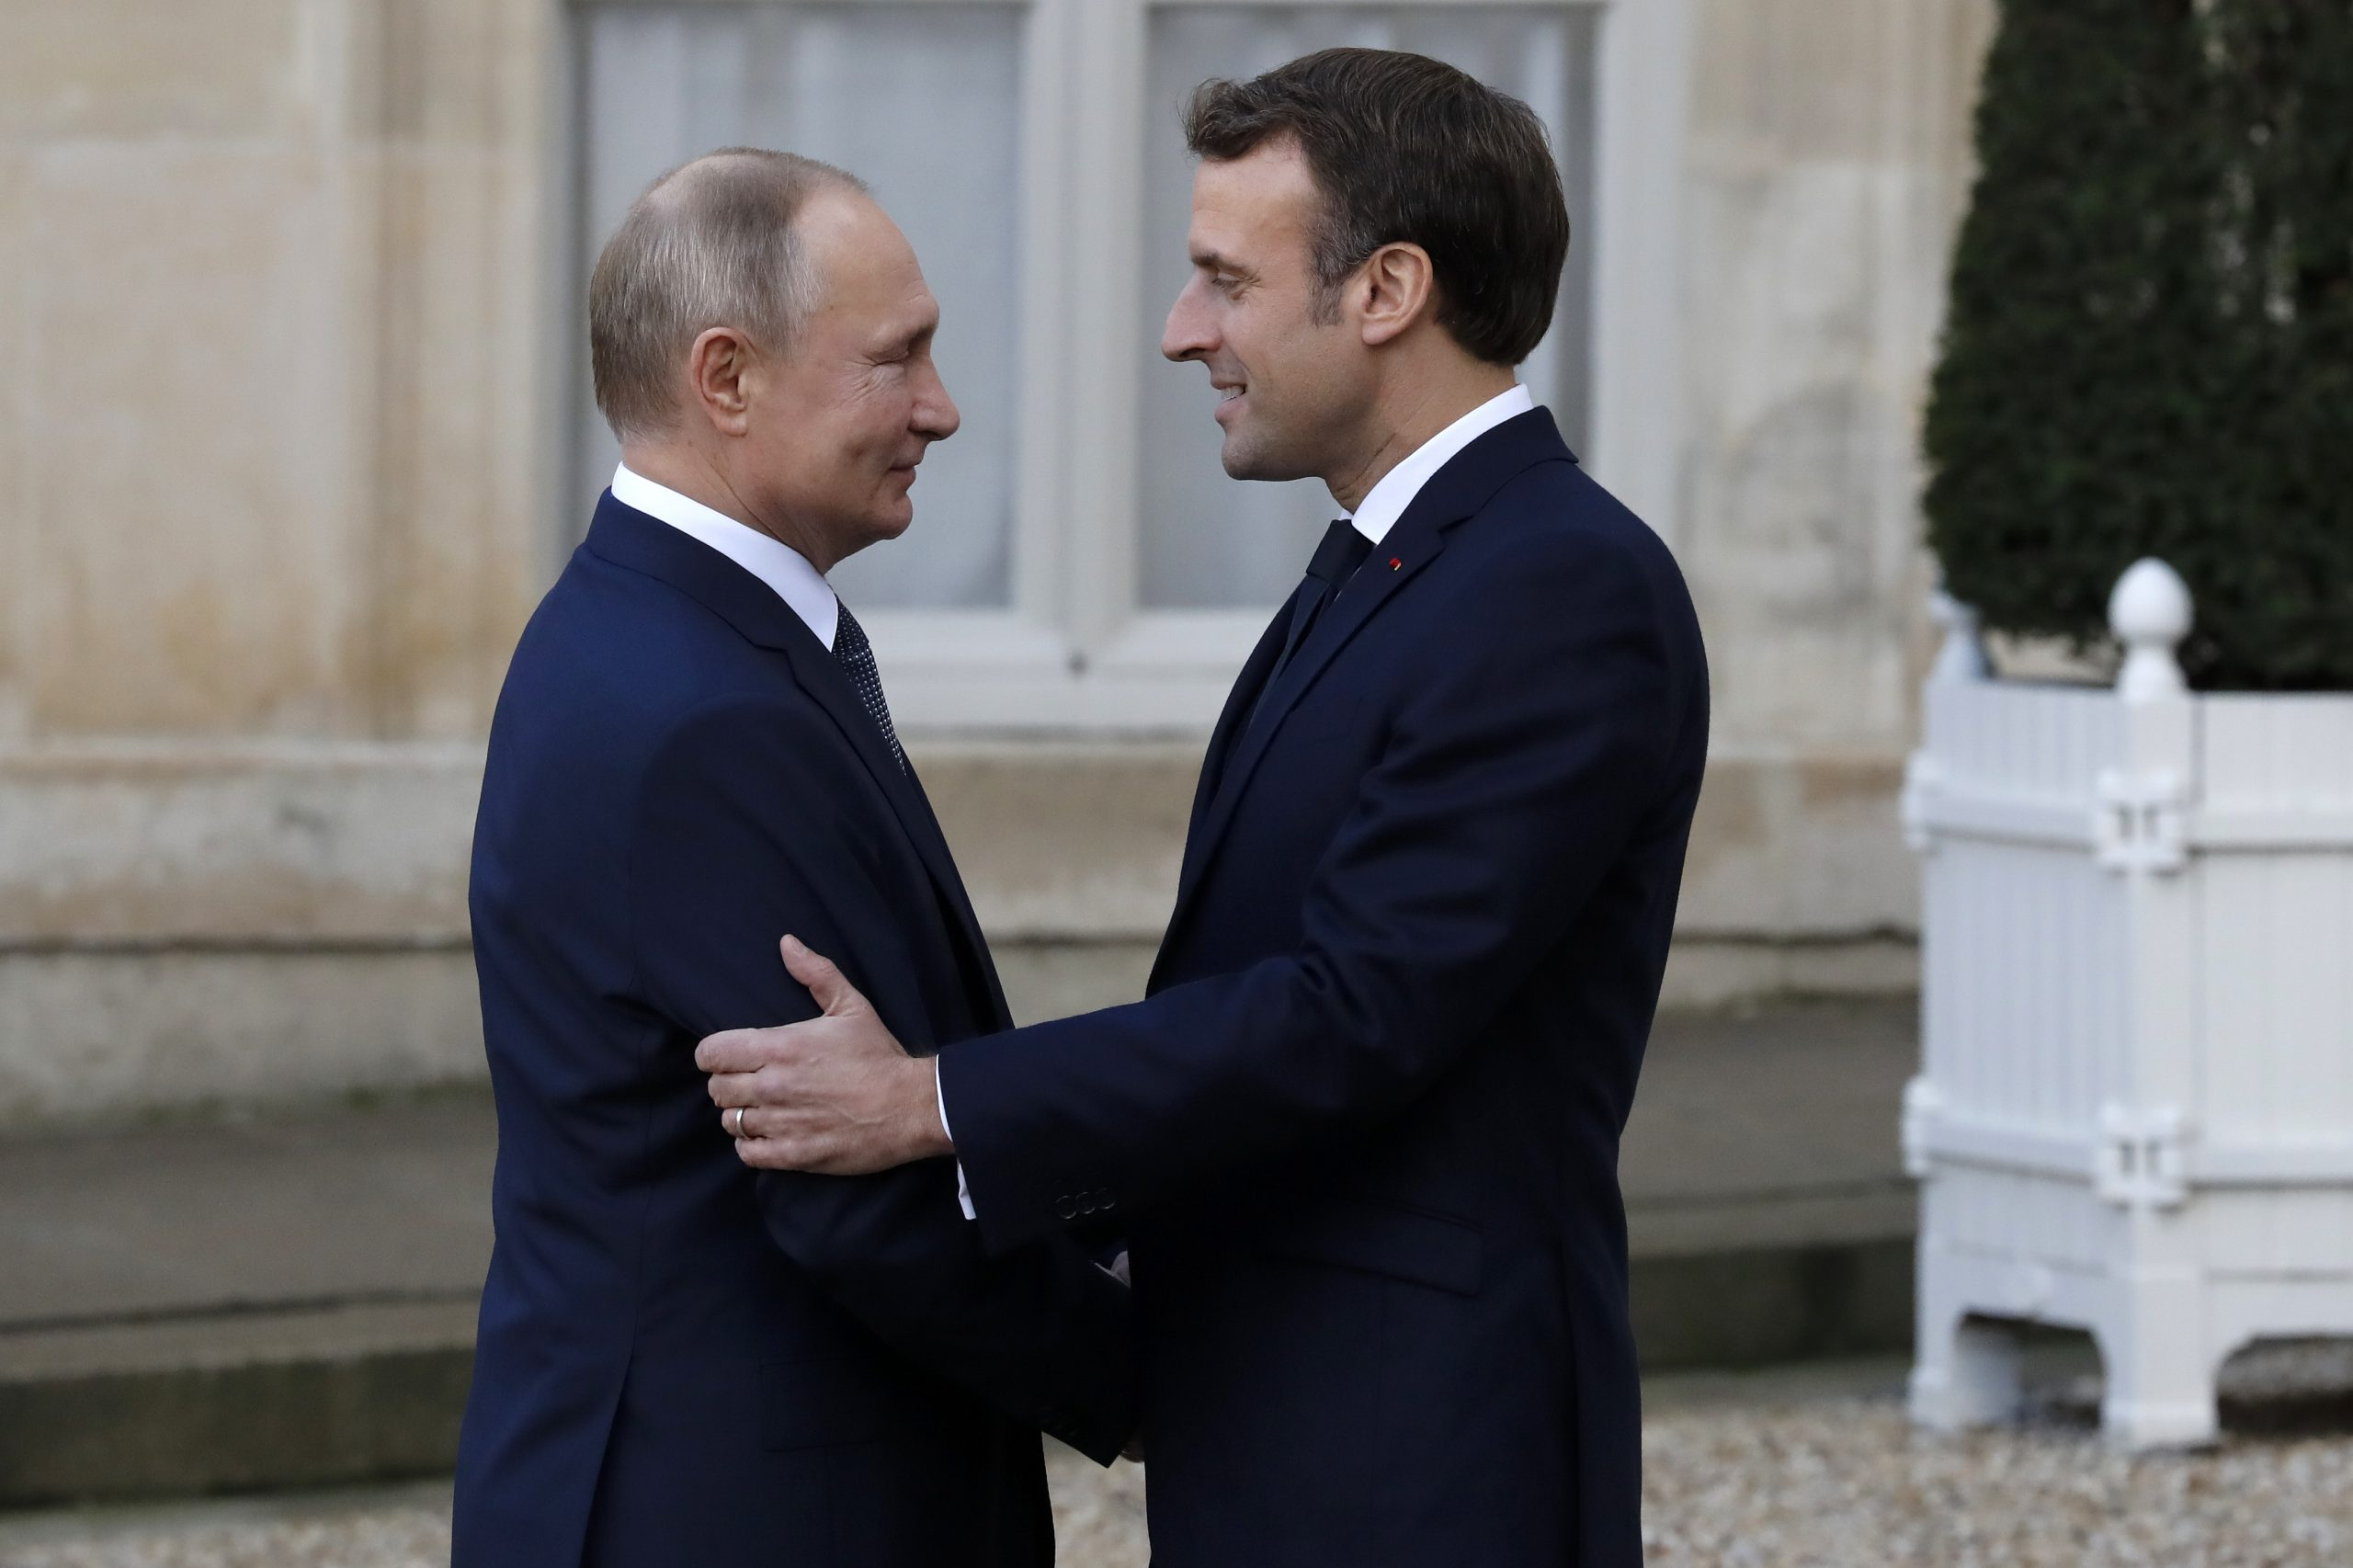 Macron stressed commitment to dialogue of trust with Russia